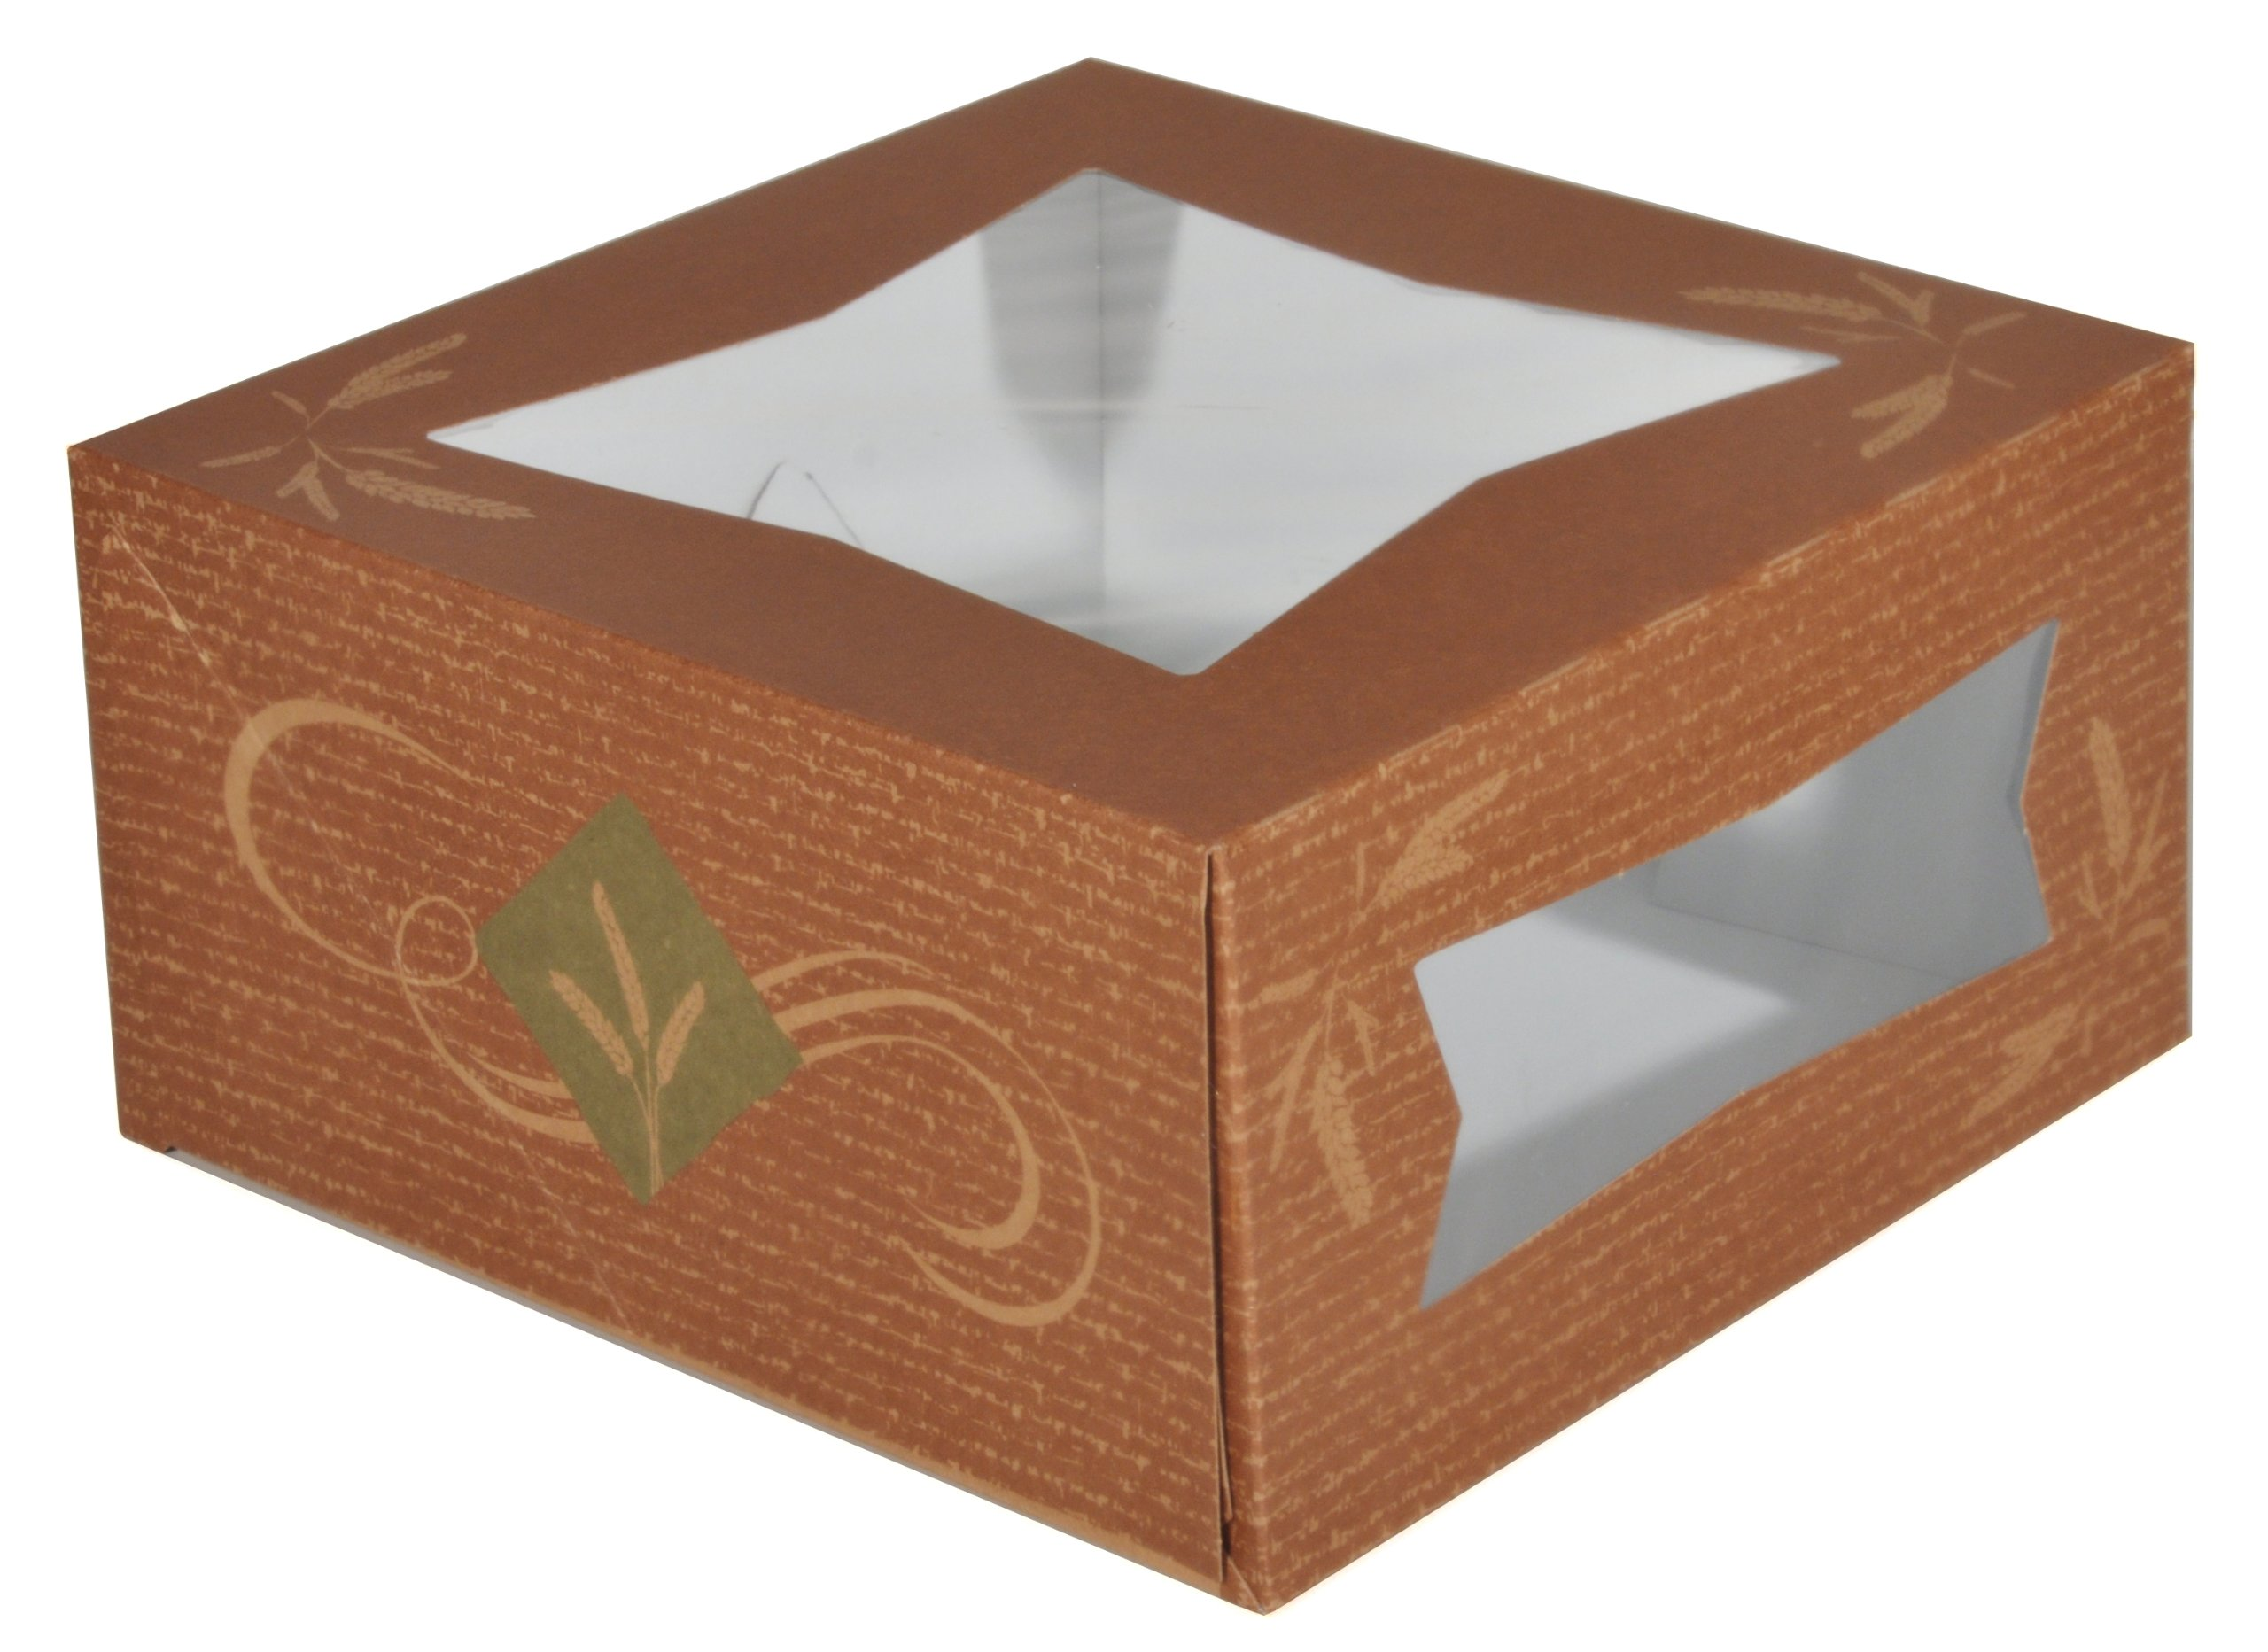 Southern Champion Tray 24056 Clay Coated Kraft Paperboard Hearthstone Window Bakery Box, 8'' Length x 8'' Width x 4'' Height (Case of 150)